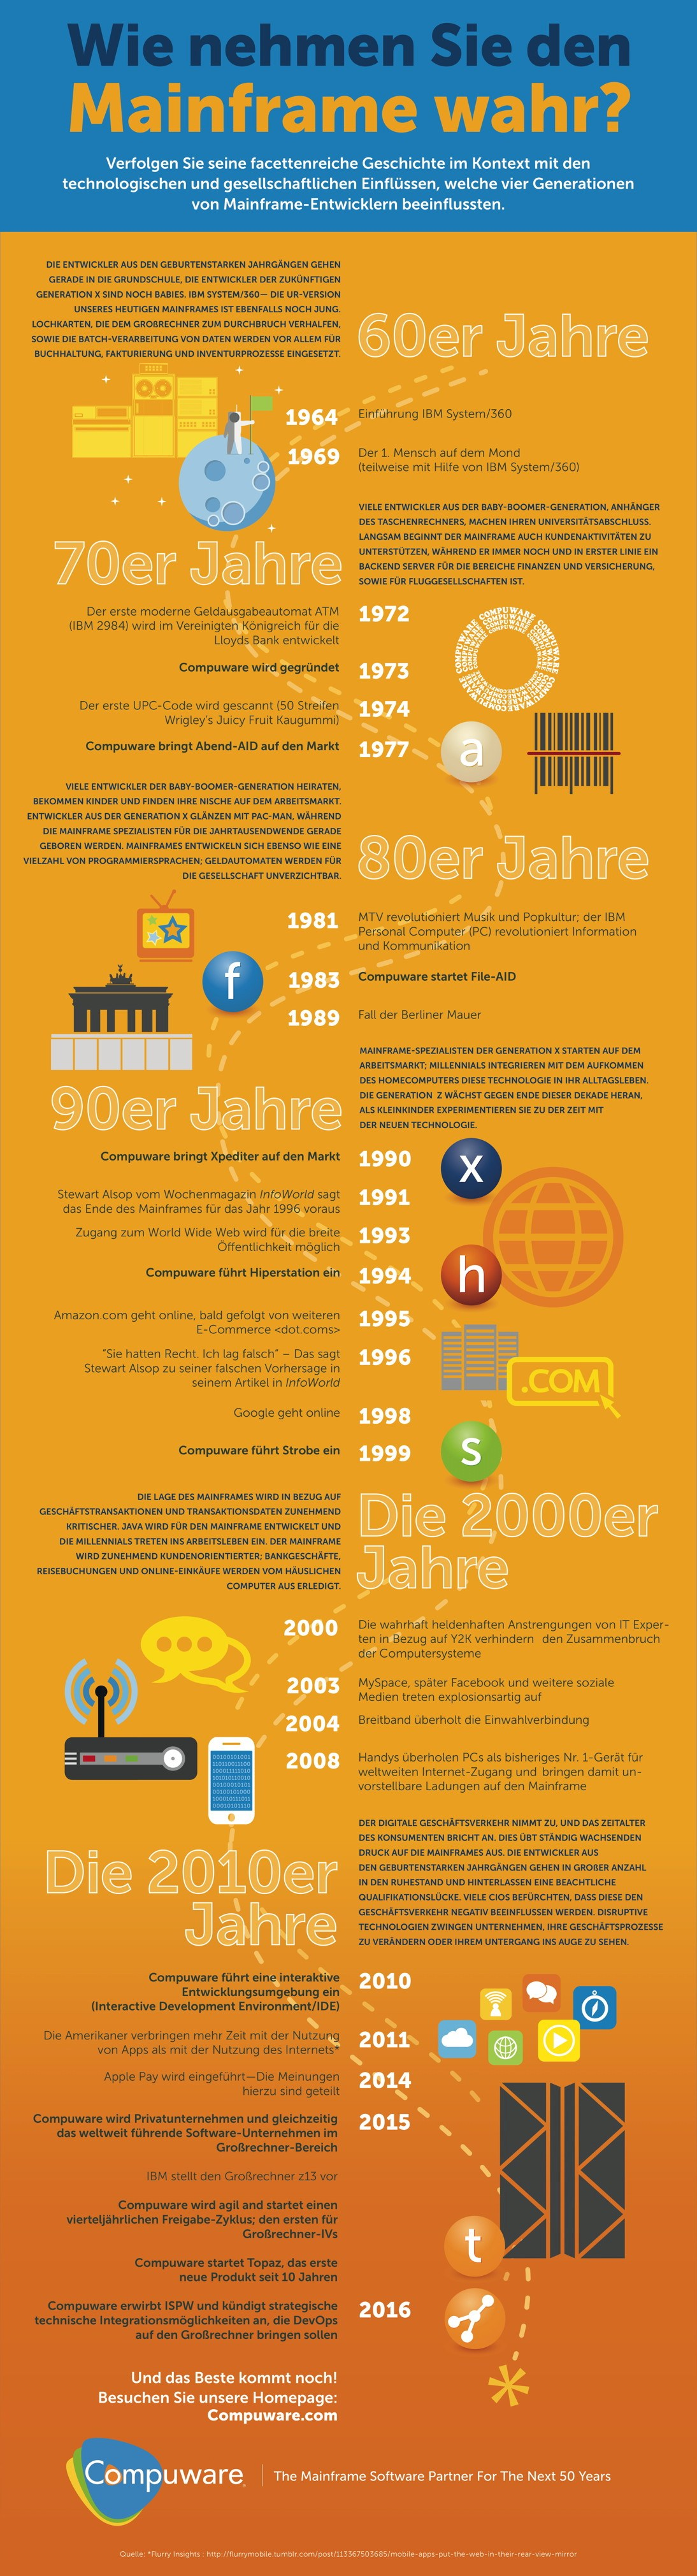 infografik compuware German-Perception of the Mainframe